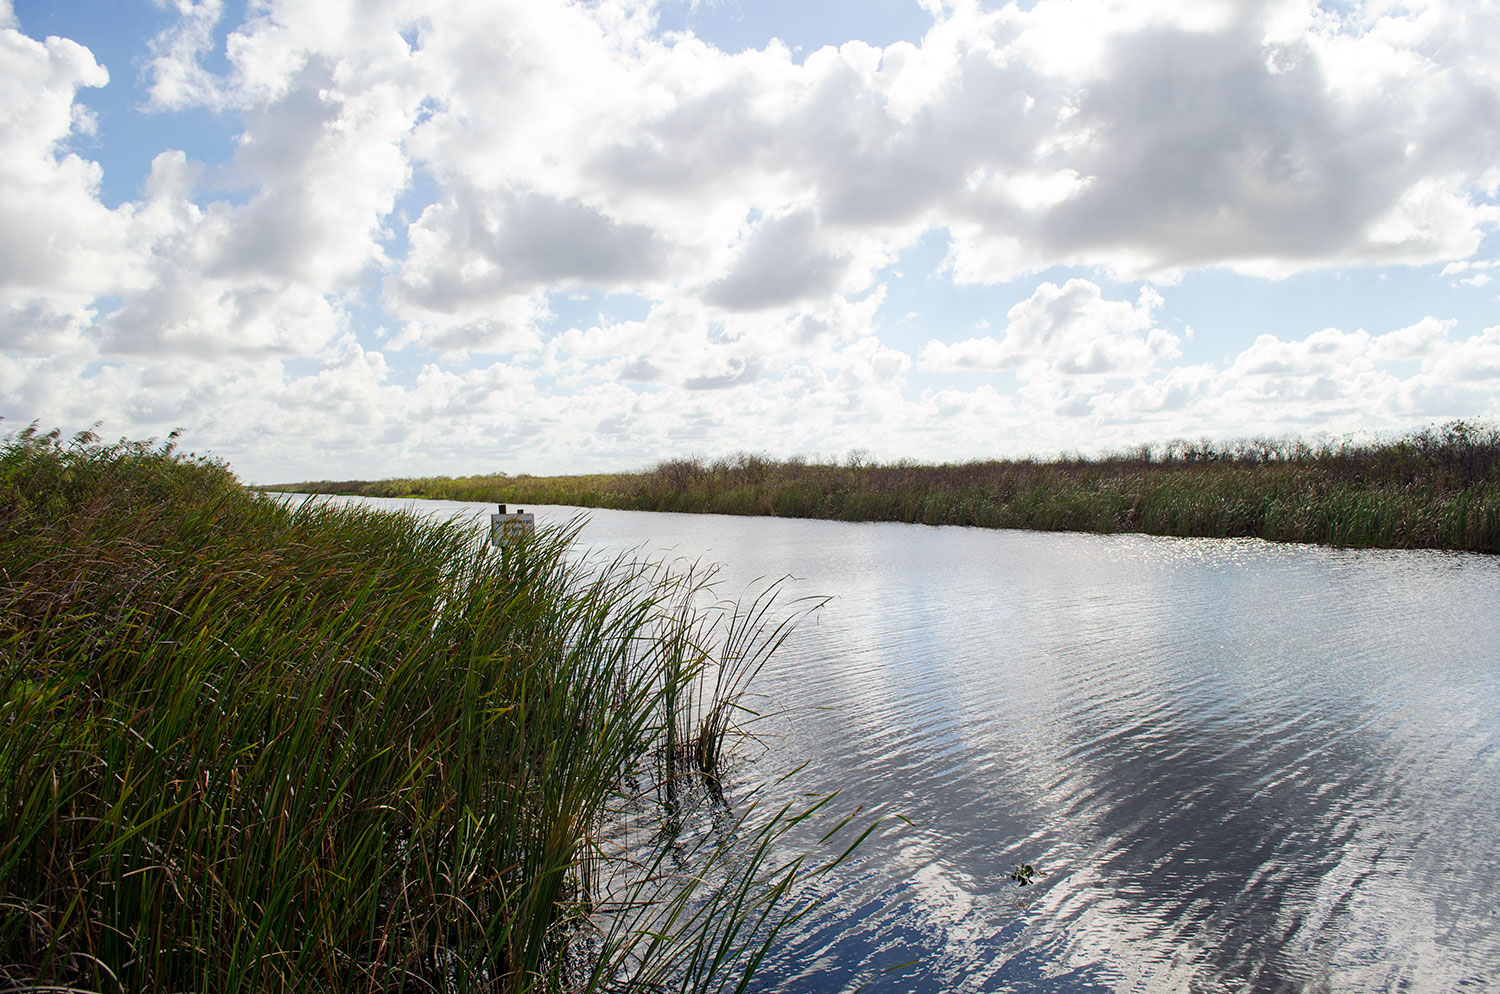 The water at Loxahatchee National Wildlife Refuge in Palm Beach County Florida